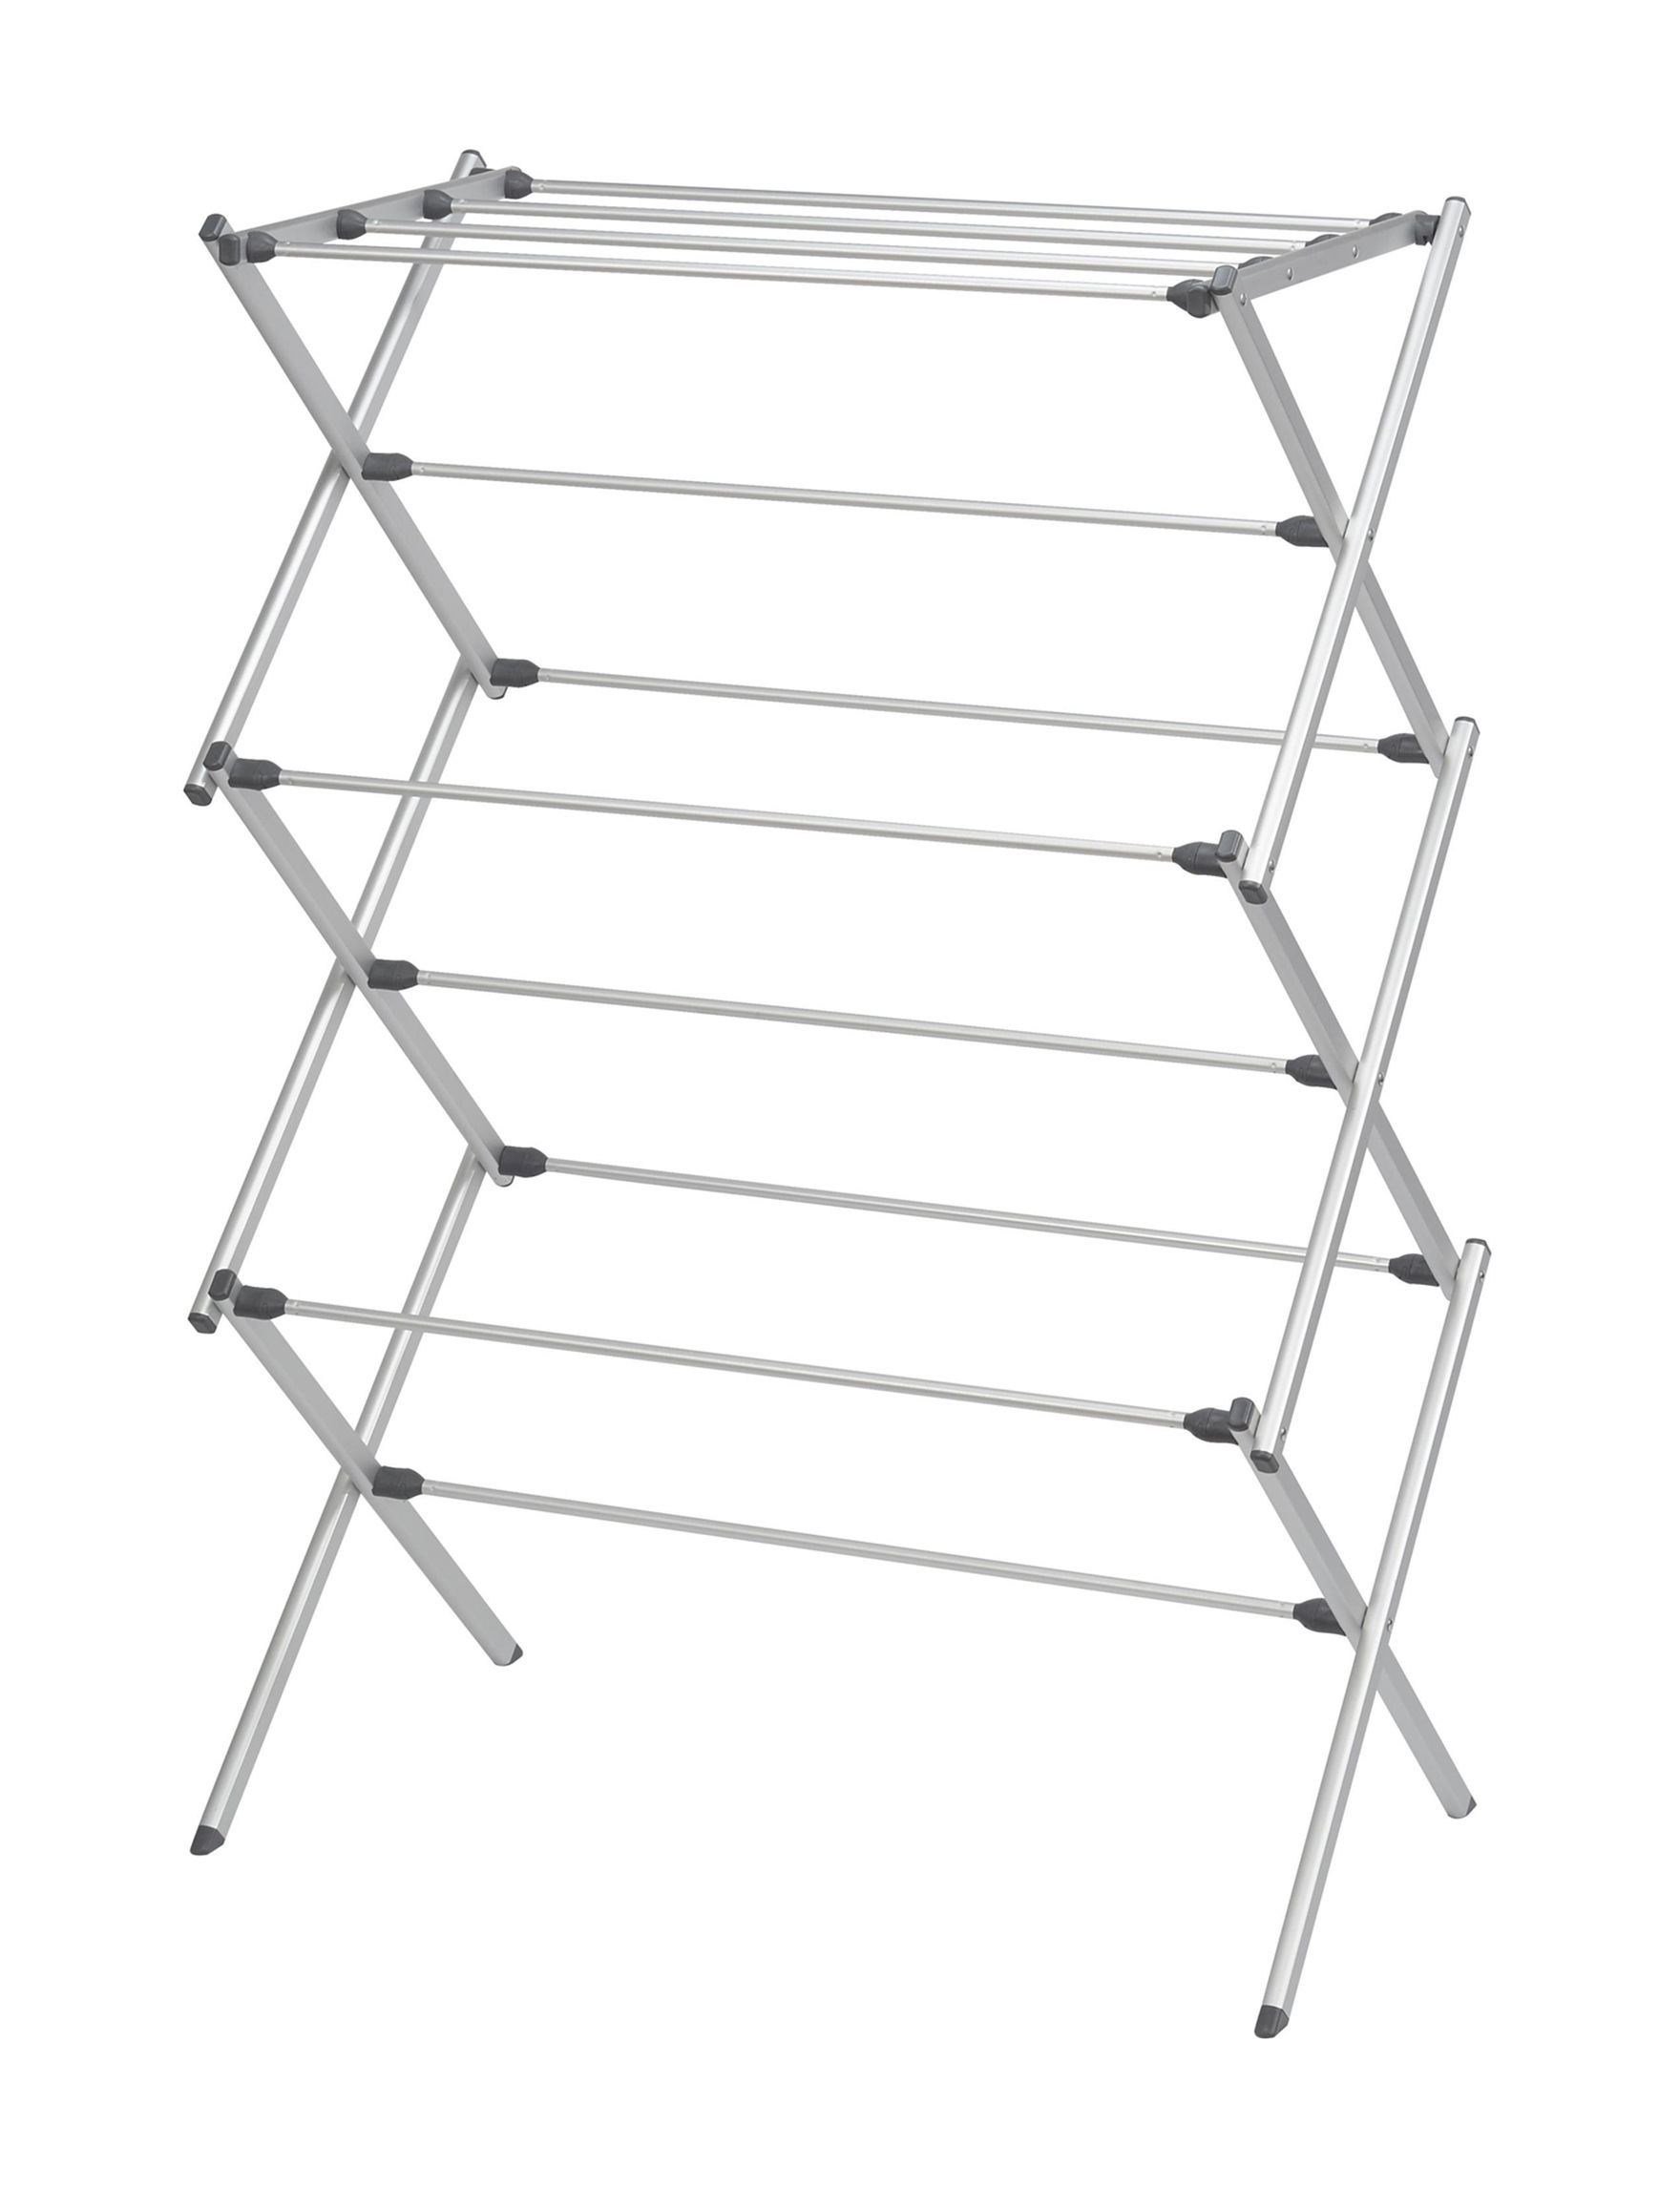 Woolite Silver Garment & Drying Racks Storage & Organization